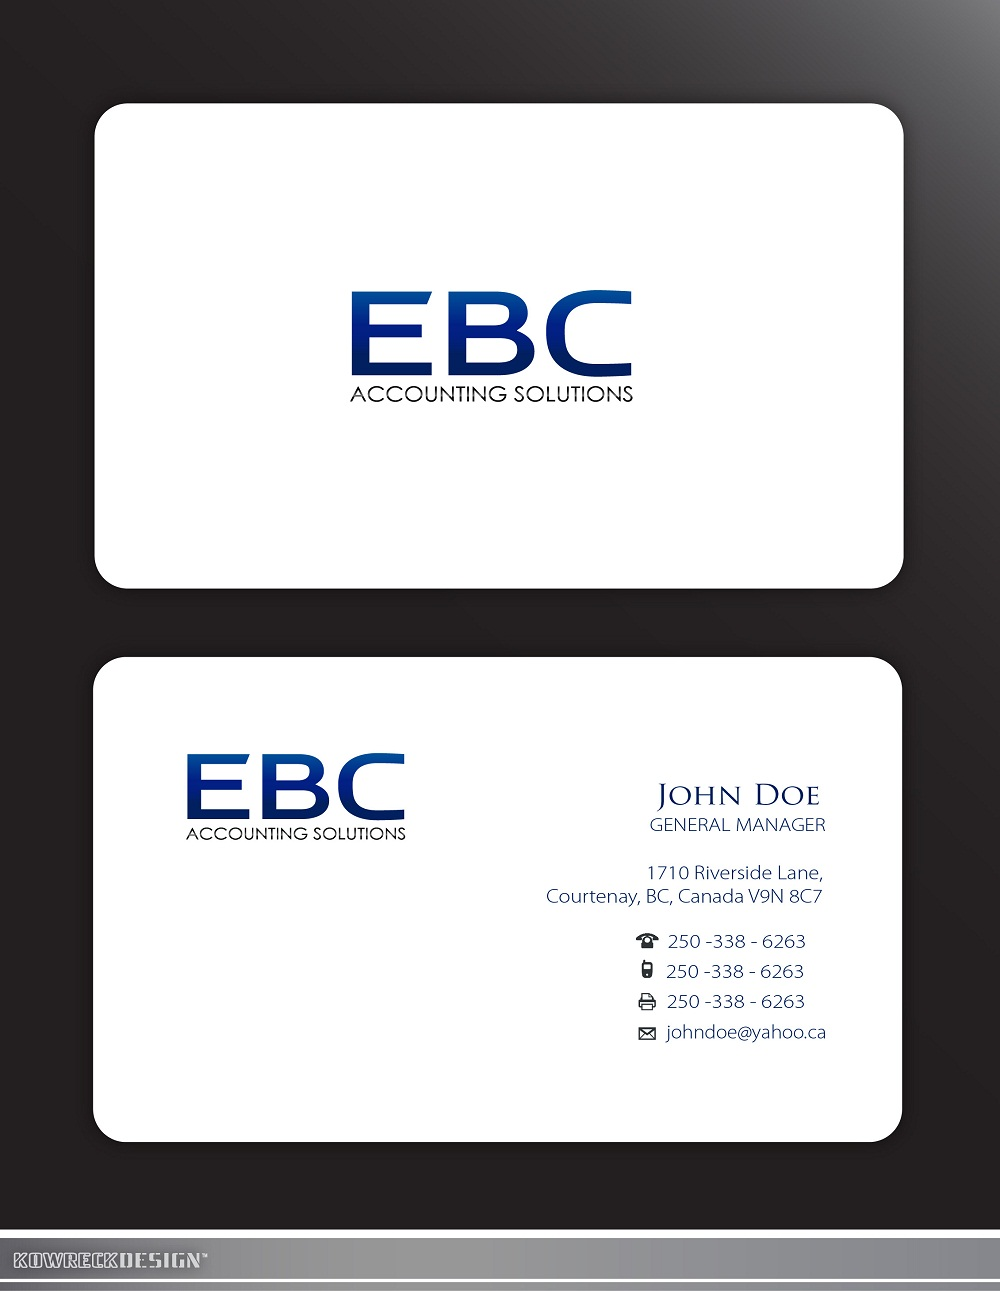 Logo Design by kowreck - Entry No. 205 in the Logo Design Contest New Logo Design for EBC Accounting Solutions.